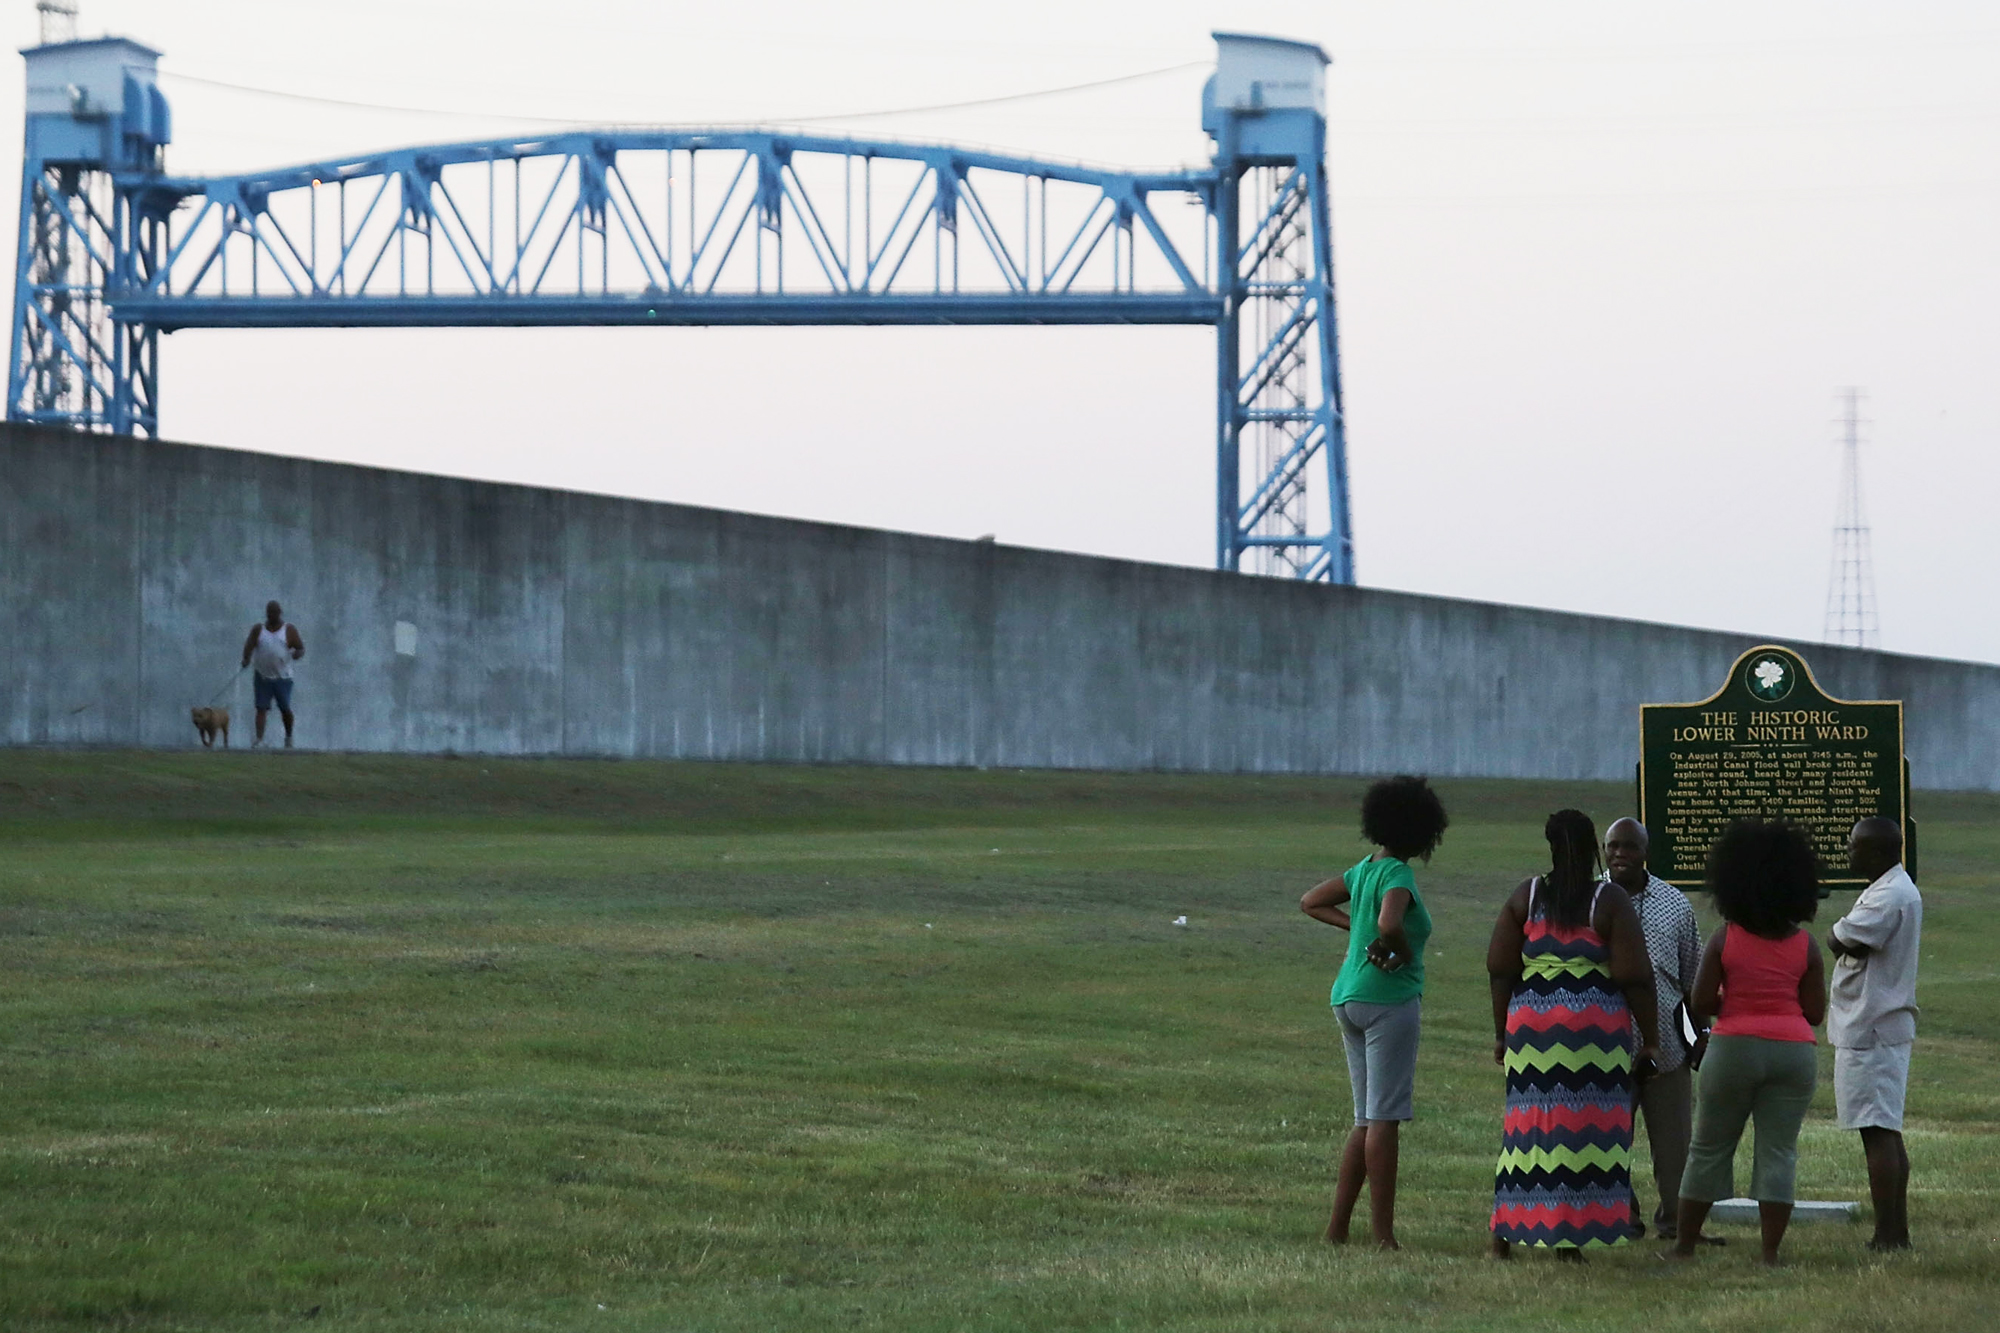 People visit the newly erected historic marker at the site where the Lower Ninth Ward levee failed on August 27, 2015 in New Orleans, Louisiana. The new levee stands in the background.